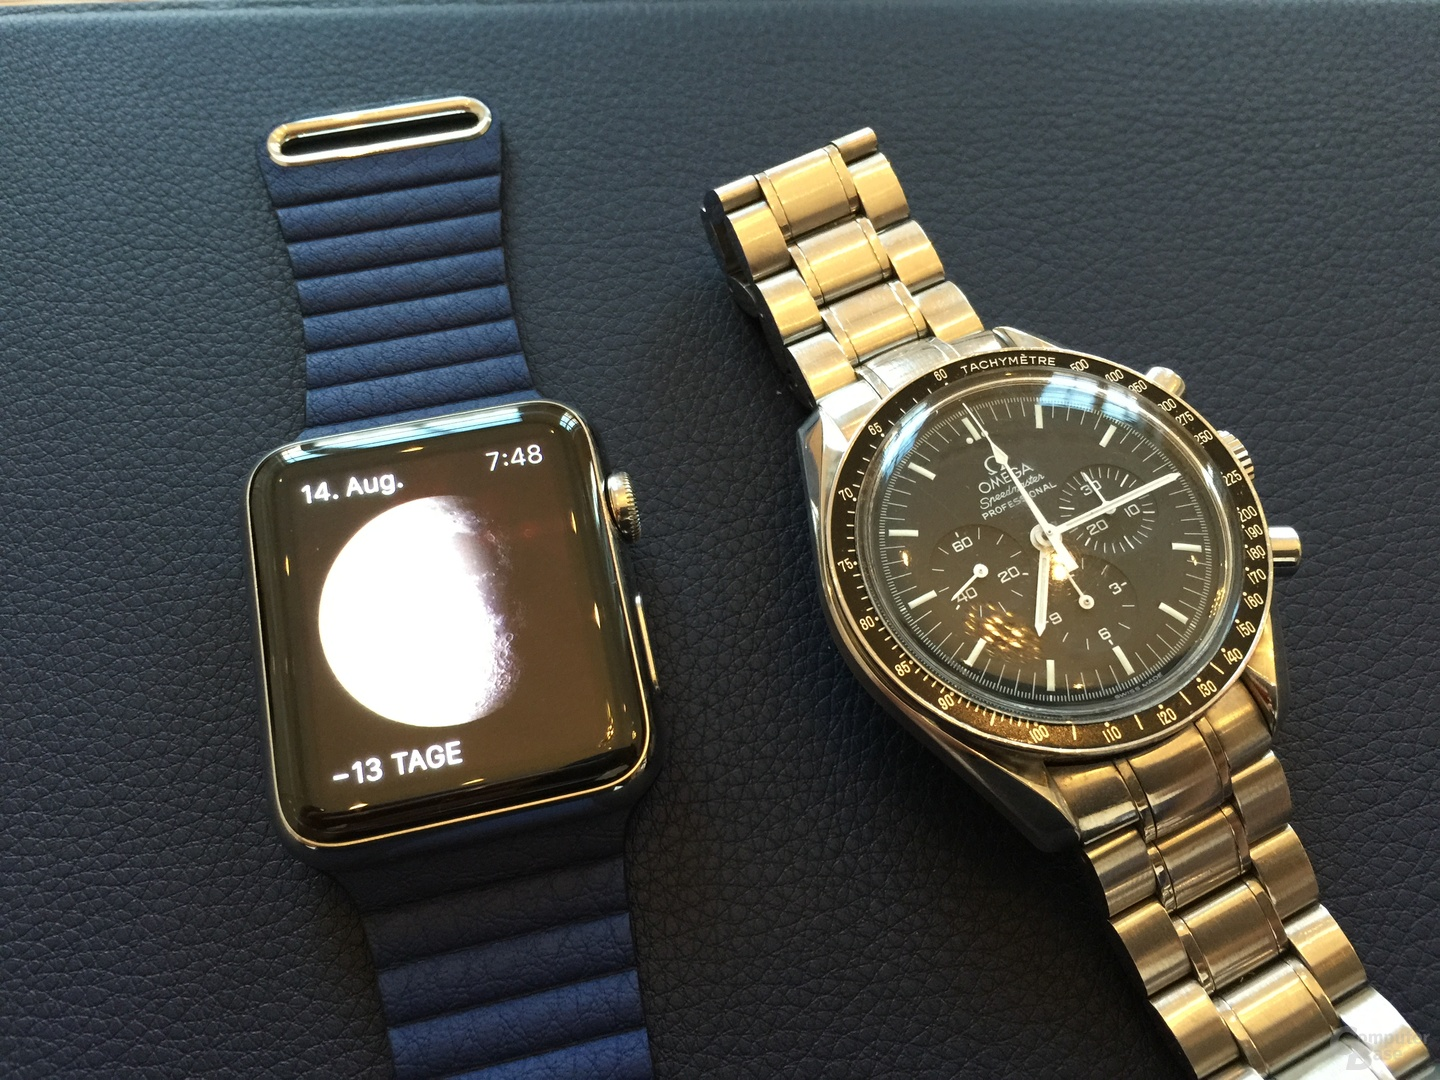 Apple Watch mit Loop-Lederarmband neben Omega Speedmaster Professional